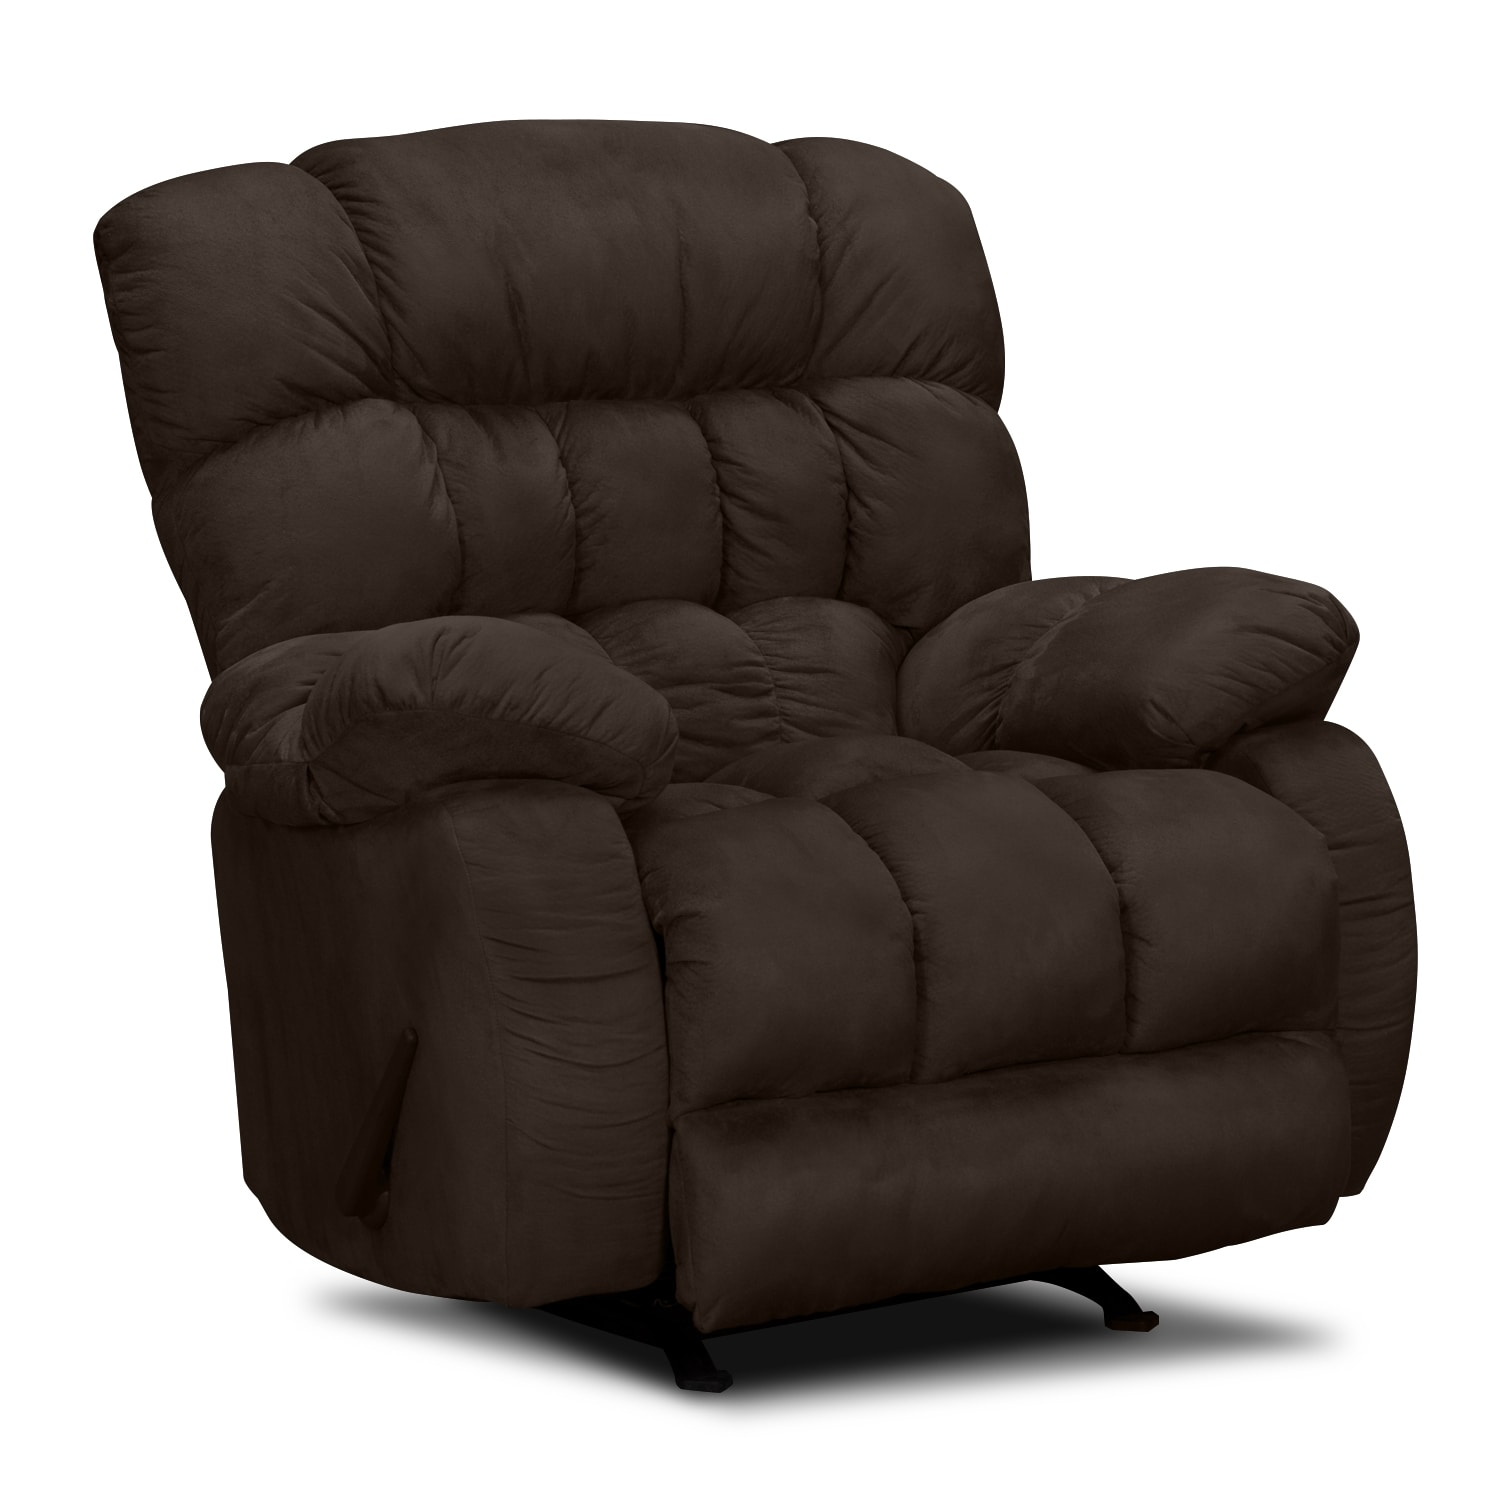 When Are Furniture Sales: Recliners & Rockers